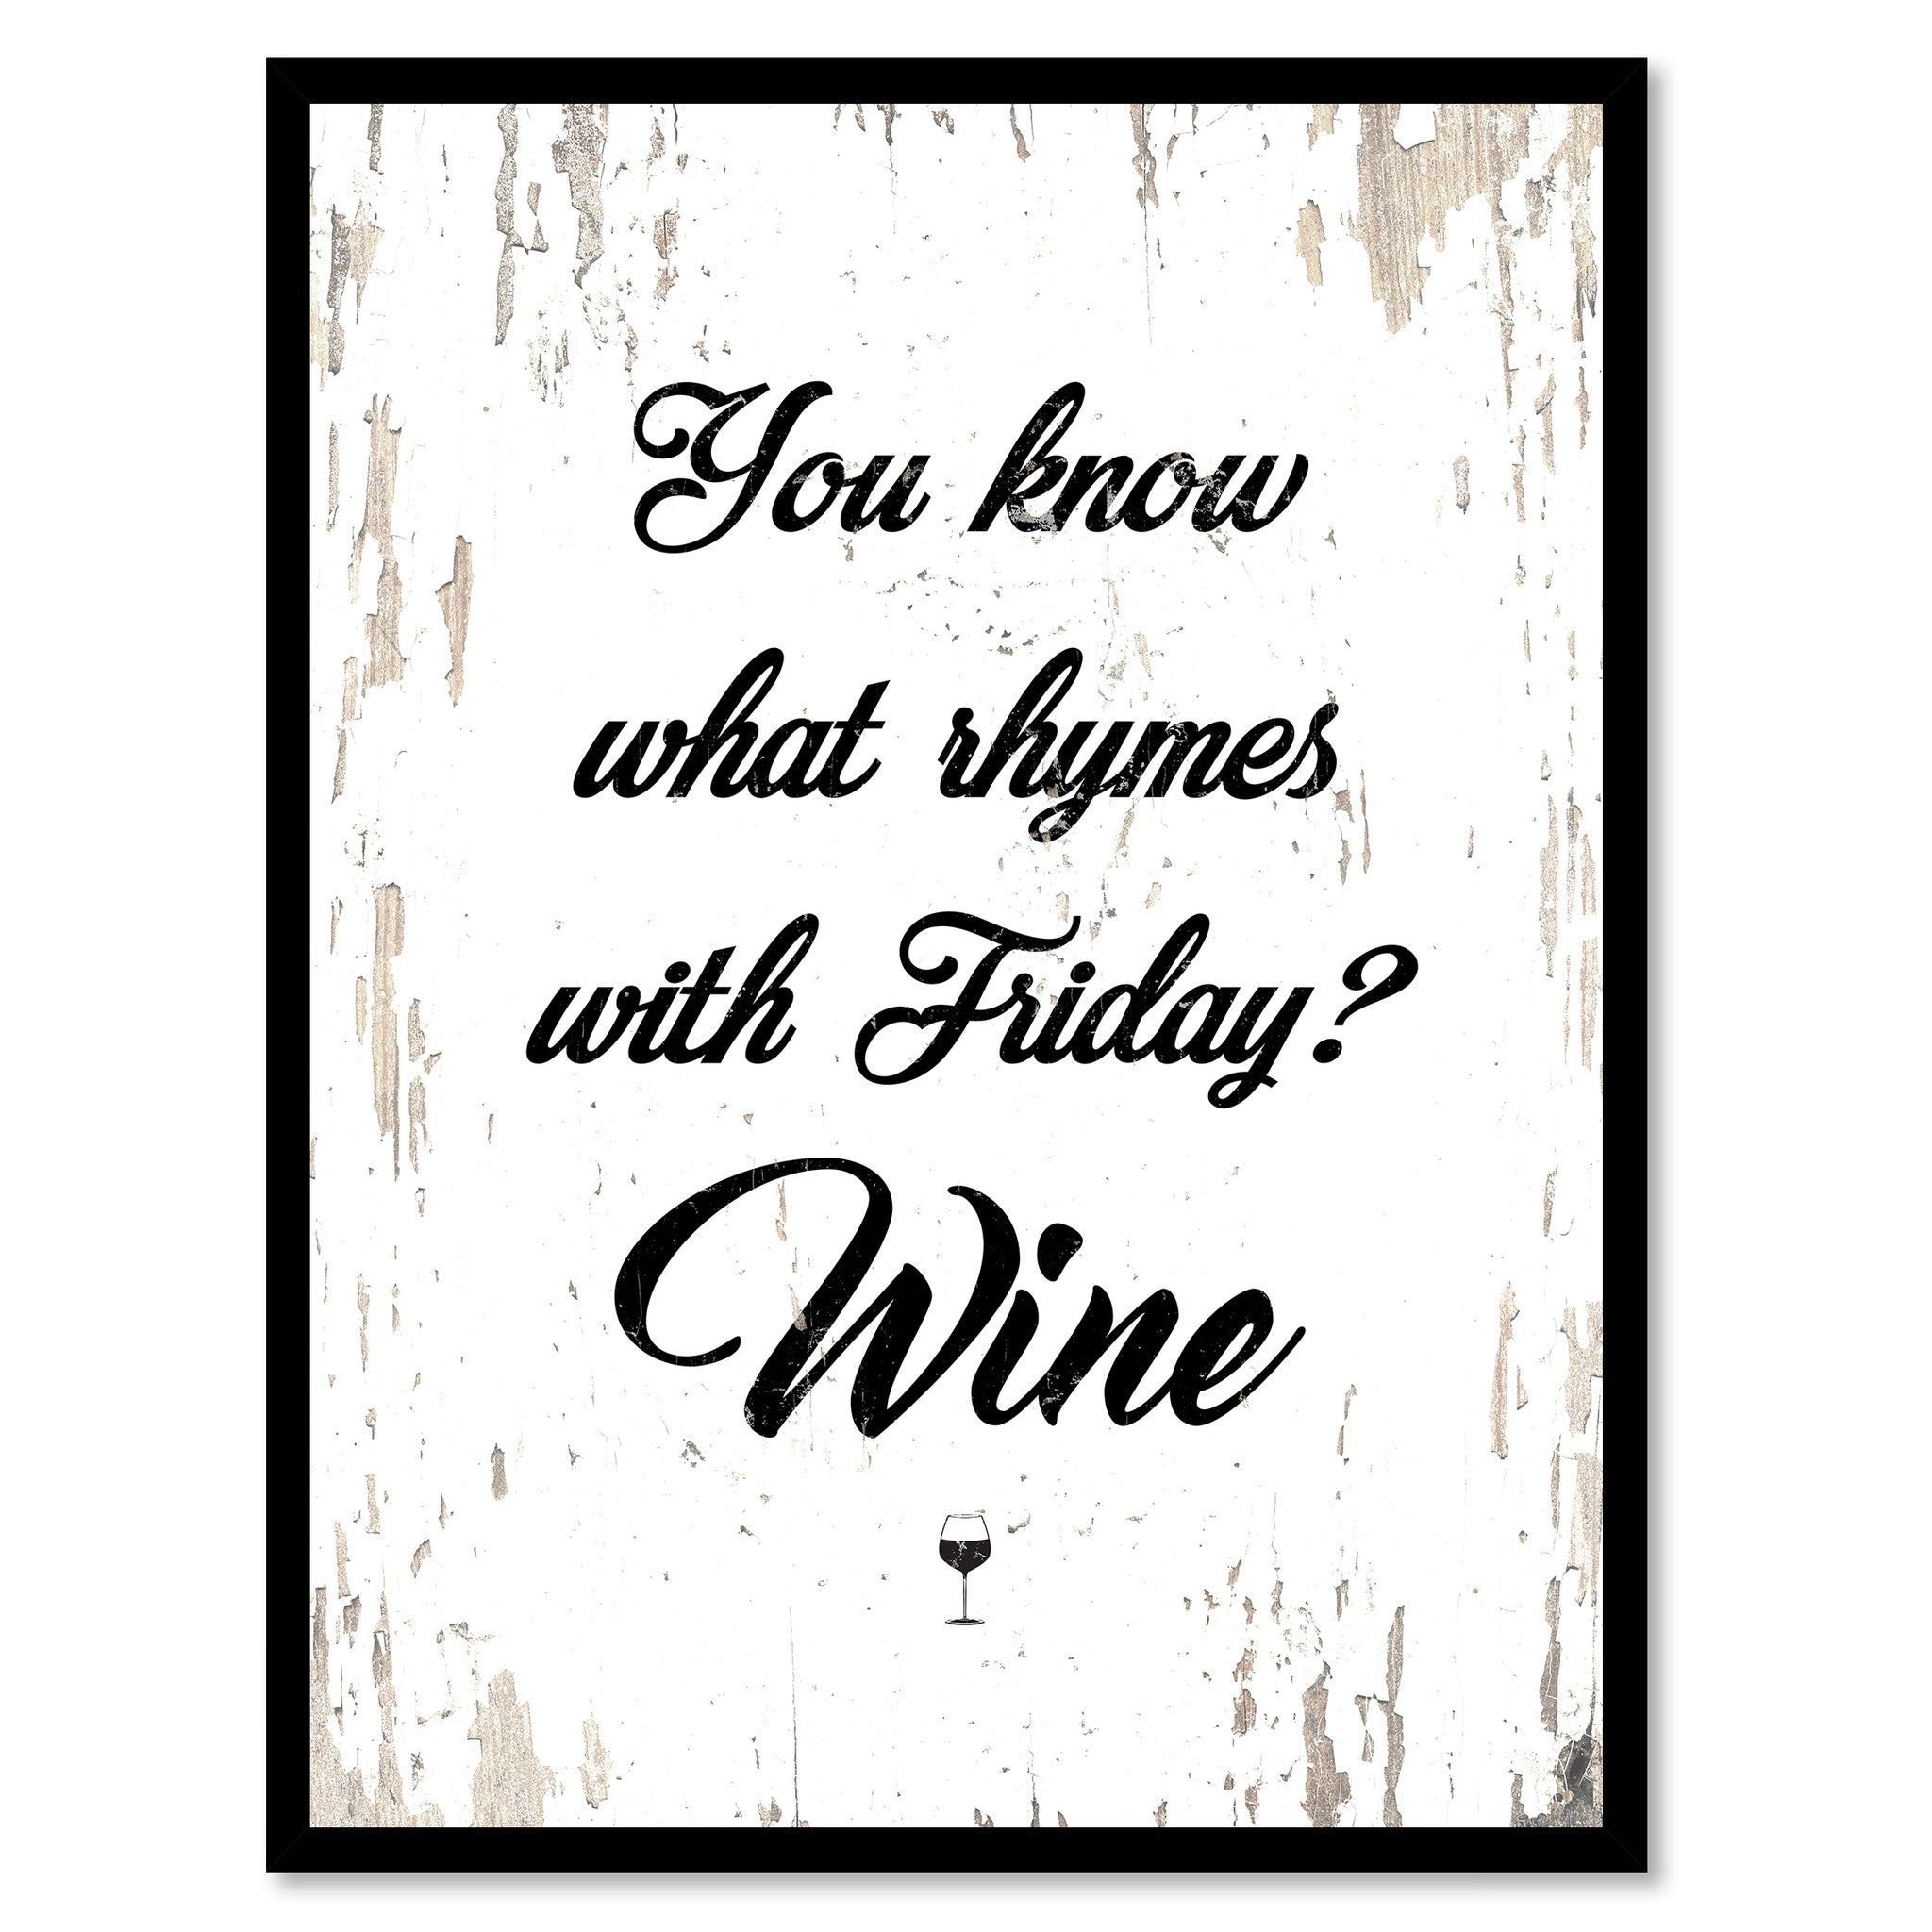 Rhyming Life Quotes You Know What Rhymes With Friday Wine Coffee Wine Saying Quote